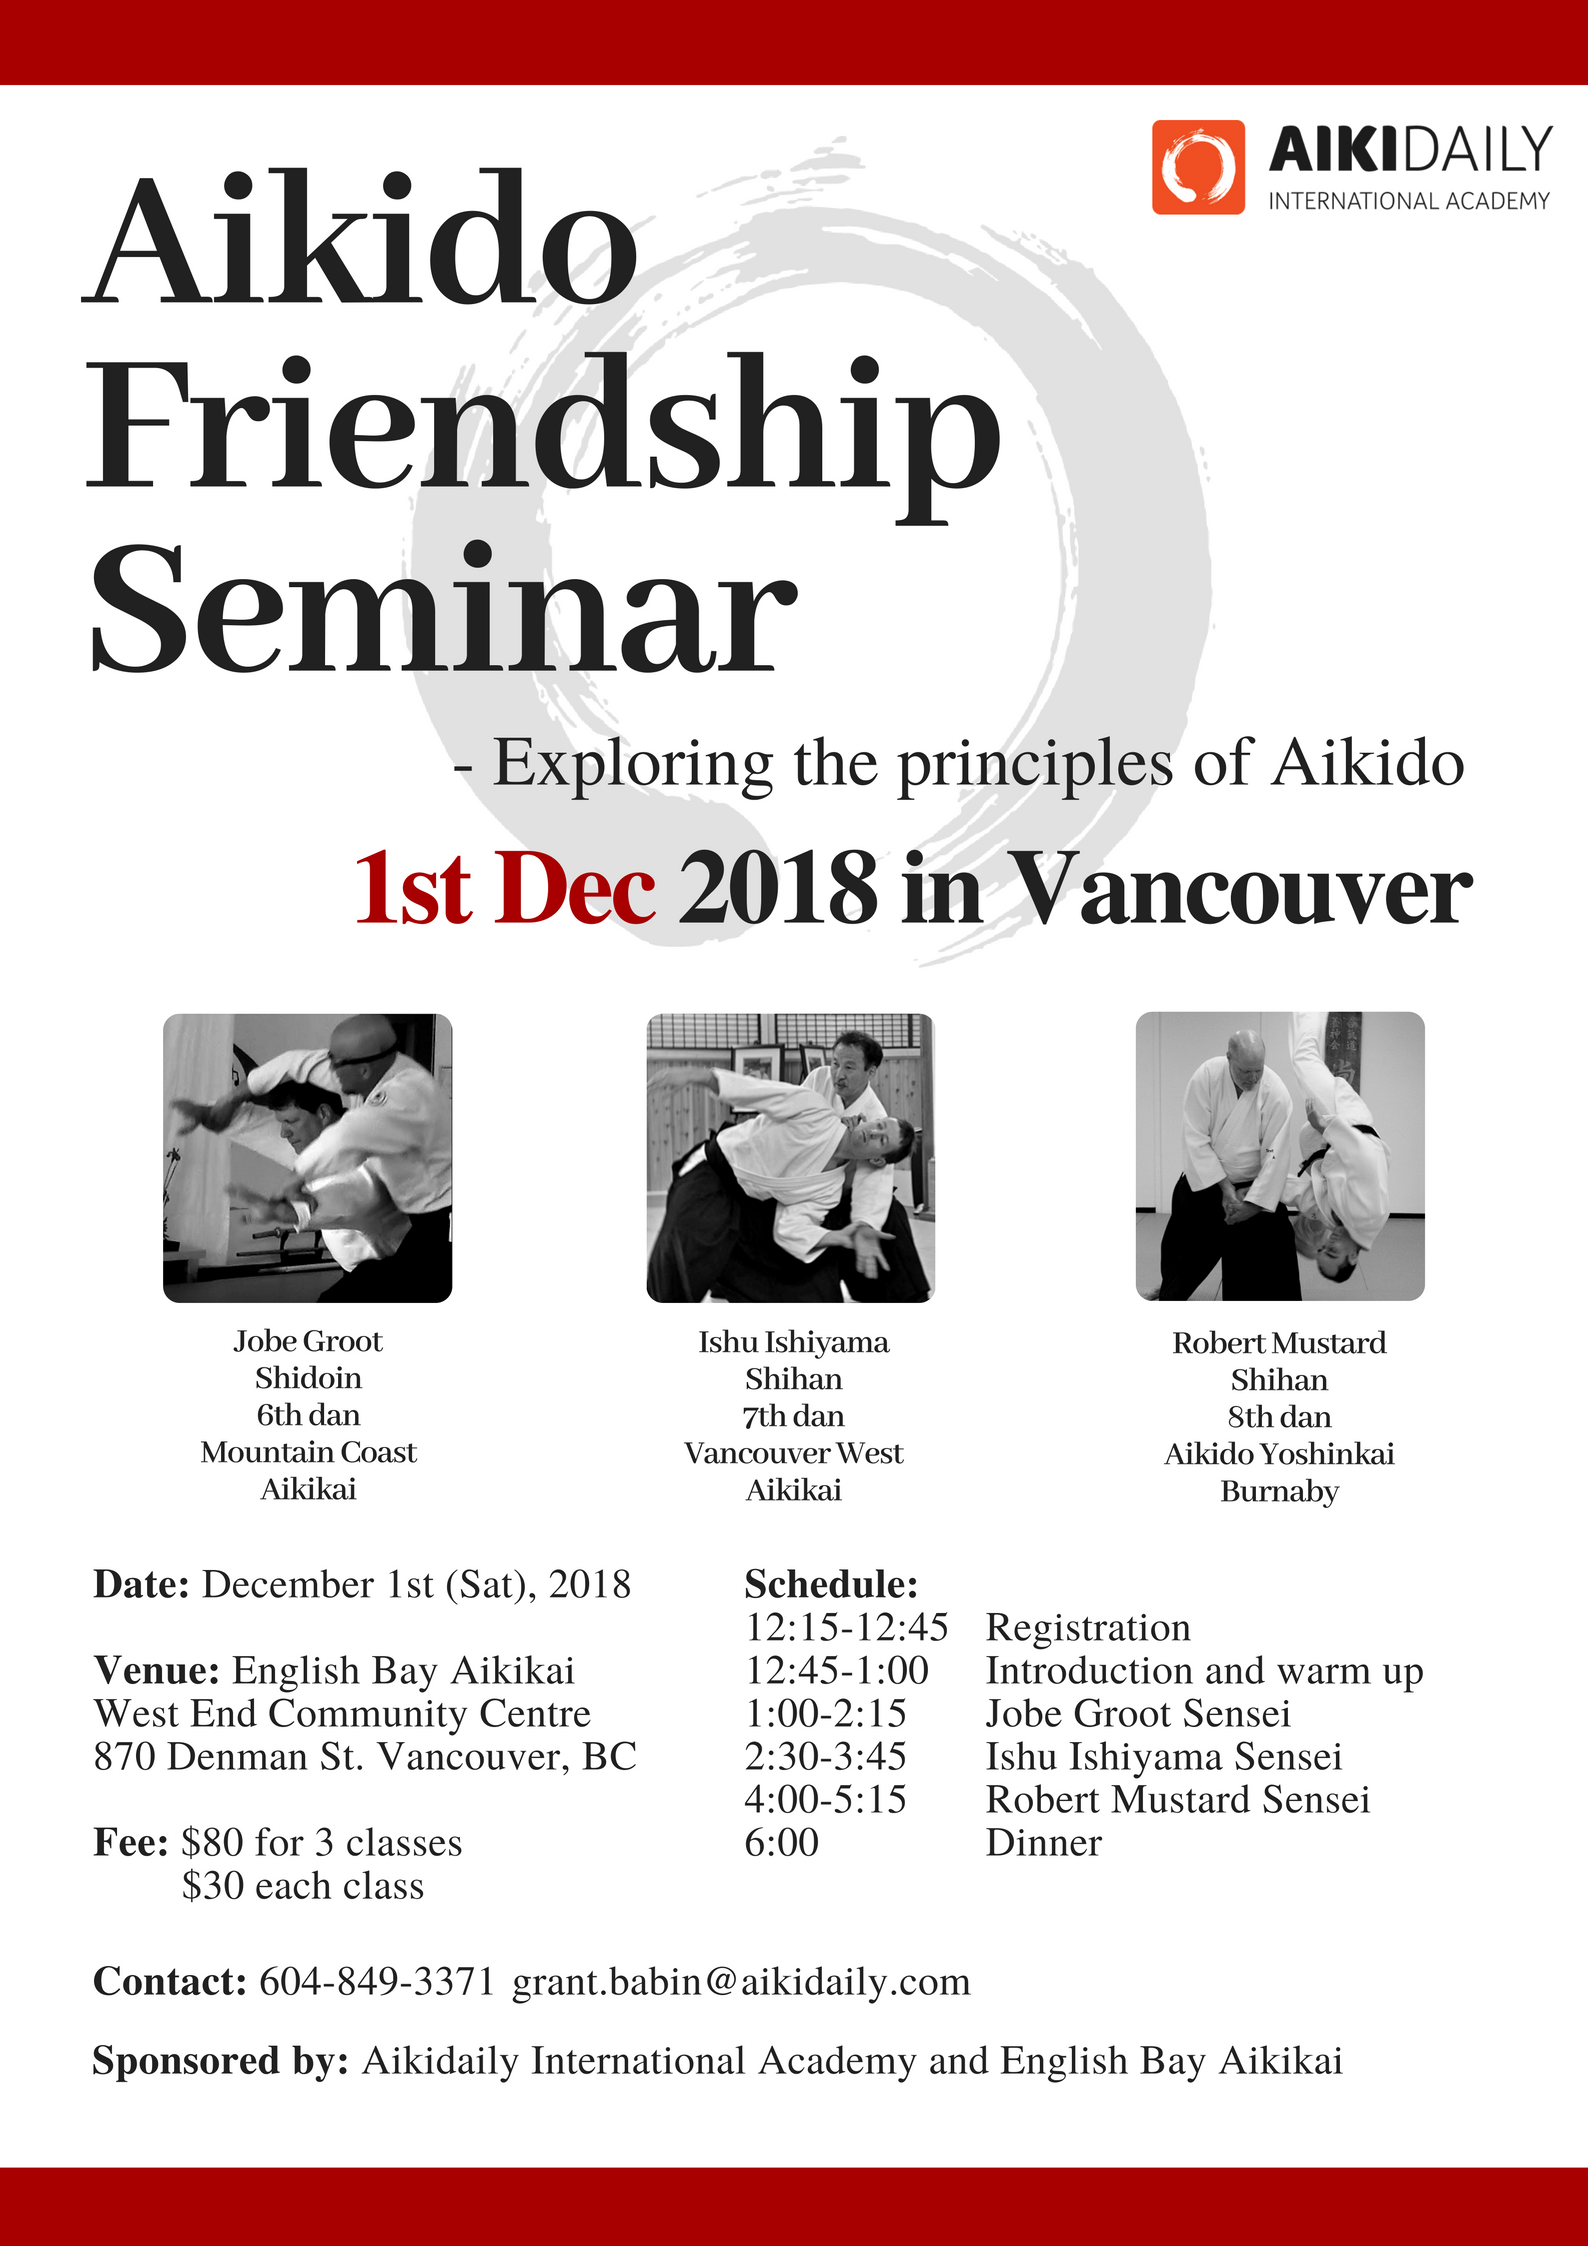 Edited_AikidoFriendshipSeminar2018.png